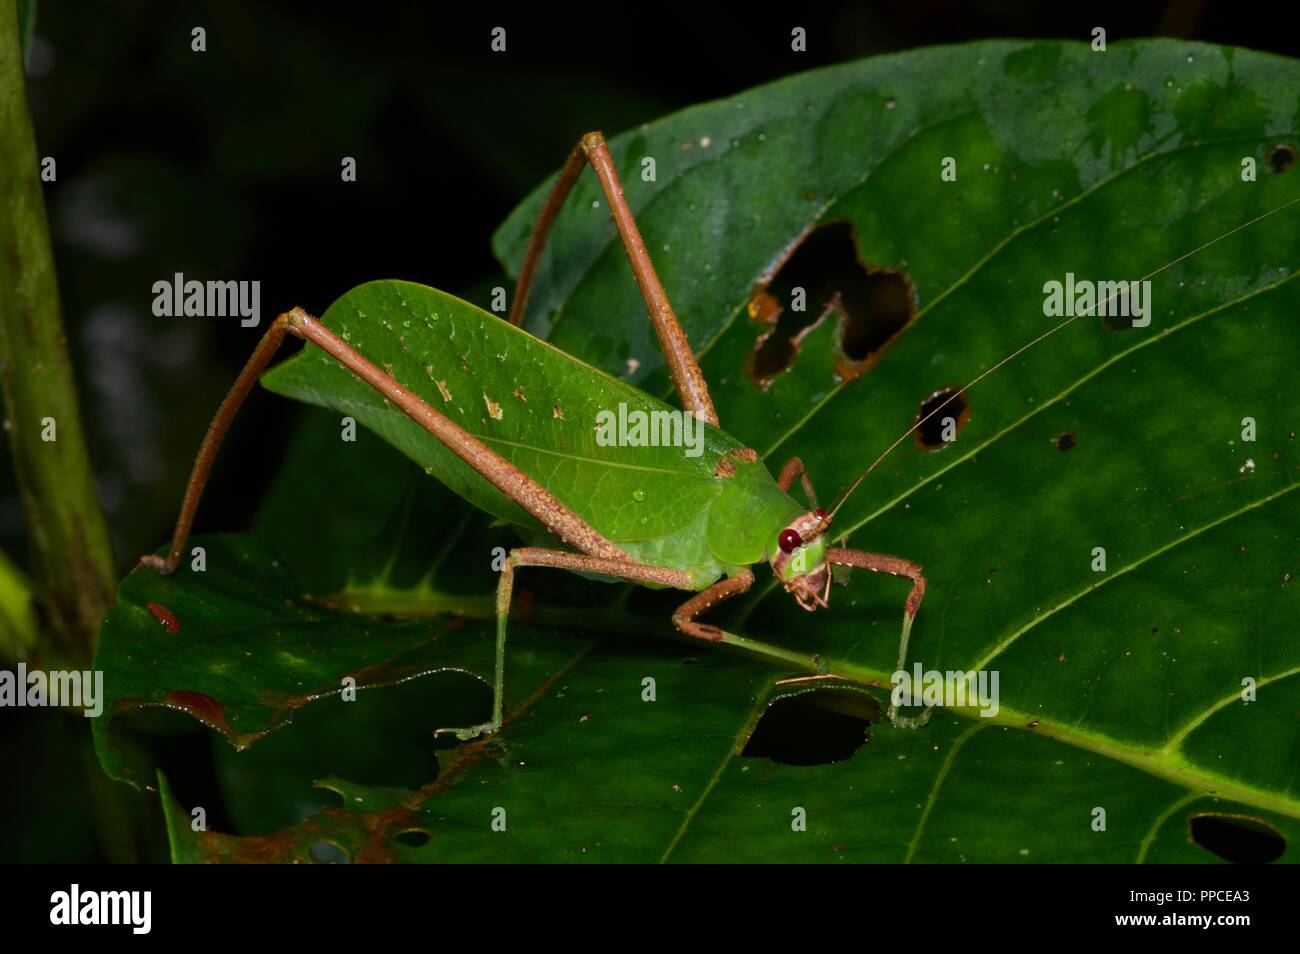 A leaf mimic katydid (family Tettigoniidae) in the rainforest foliage at night in Atewa Range Forest Reserve, Ghana, West Africa - Stock Image